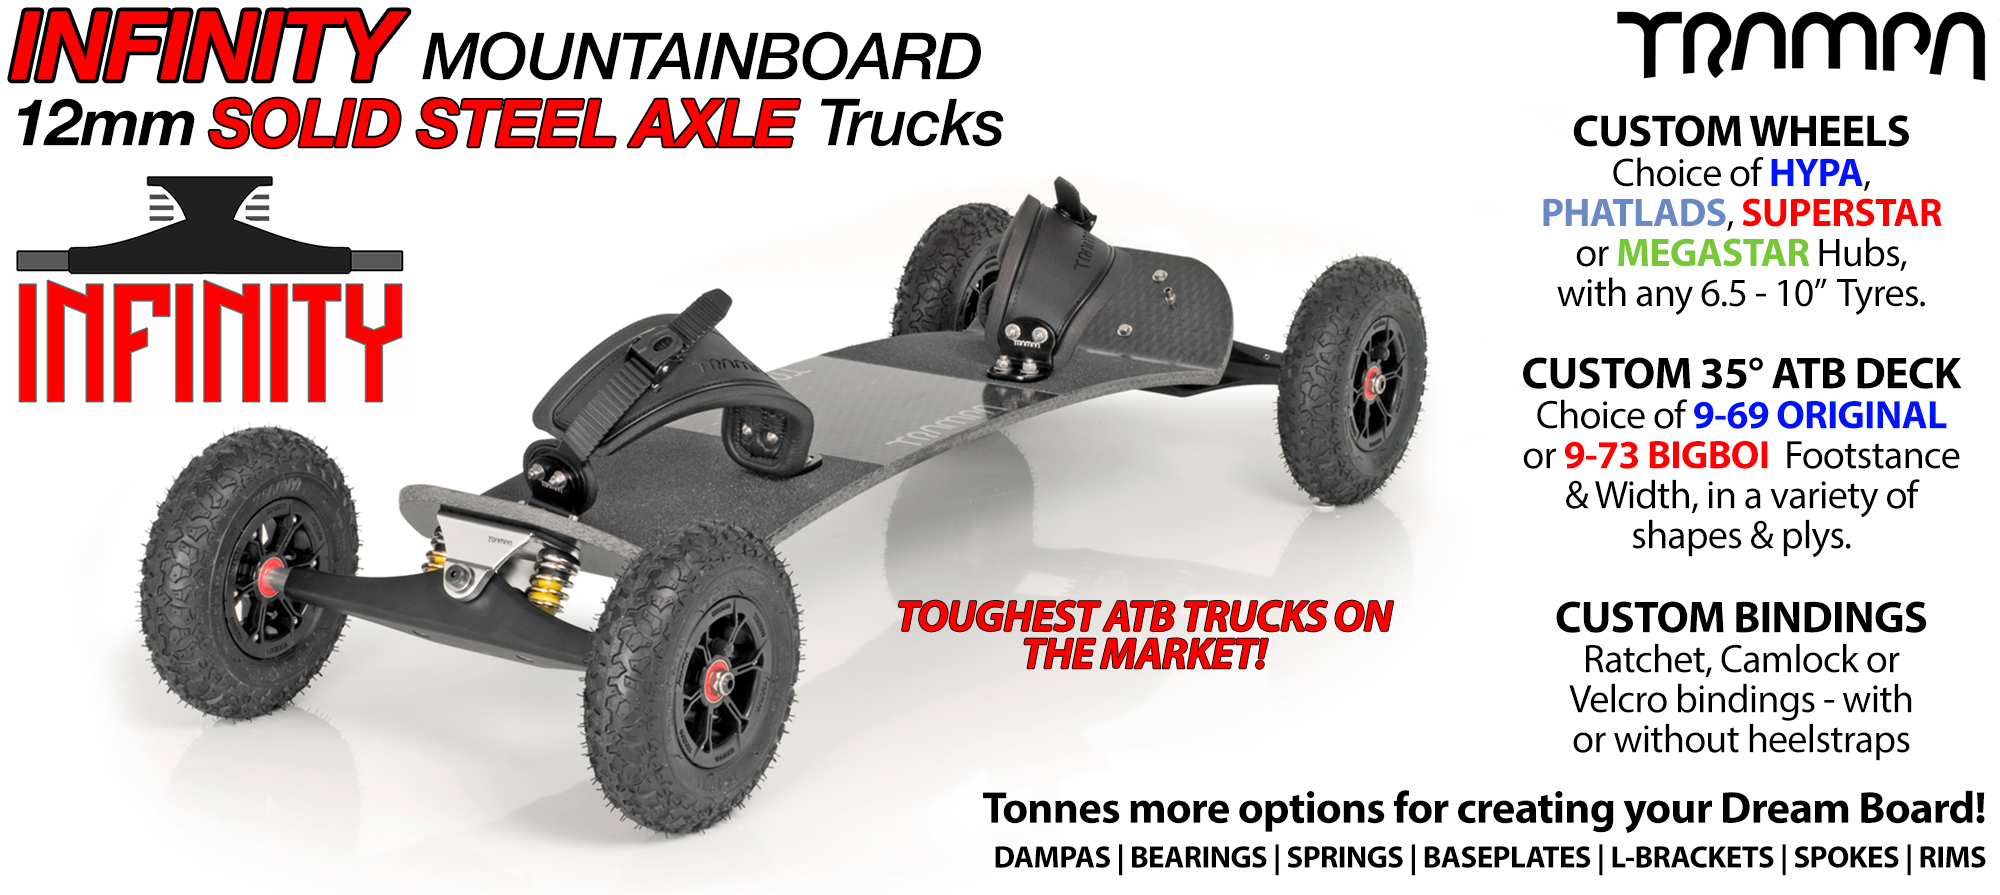 INFINITY Mountainboard - 12mm SOLID Axles